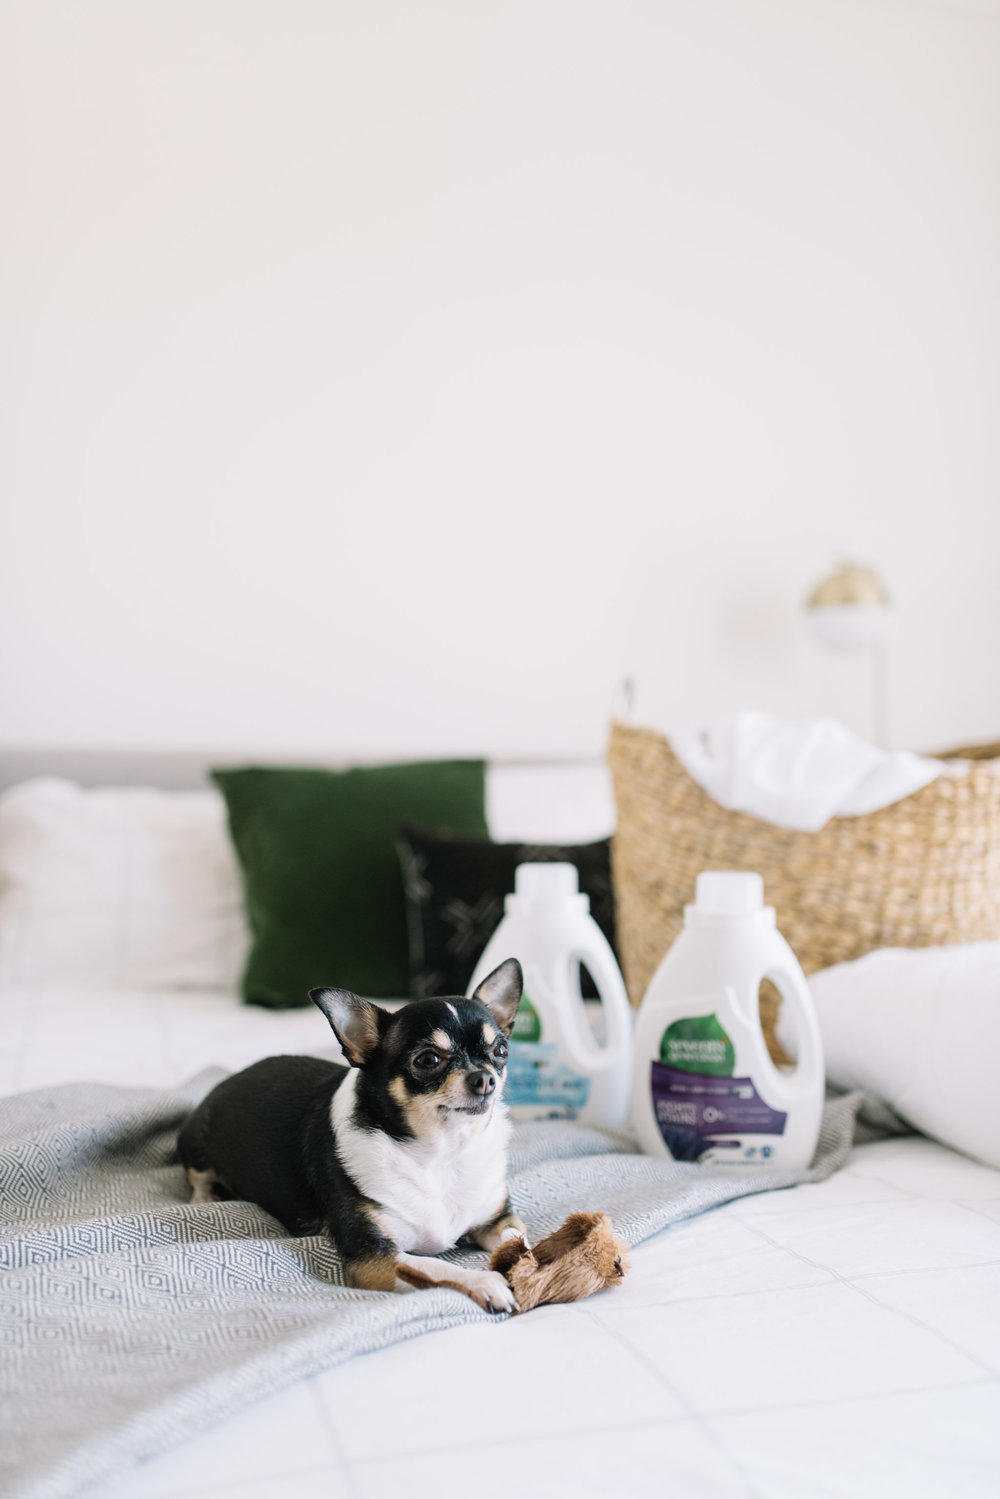 earth month, pet friendly products